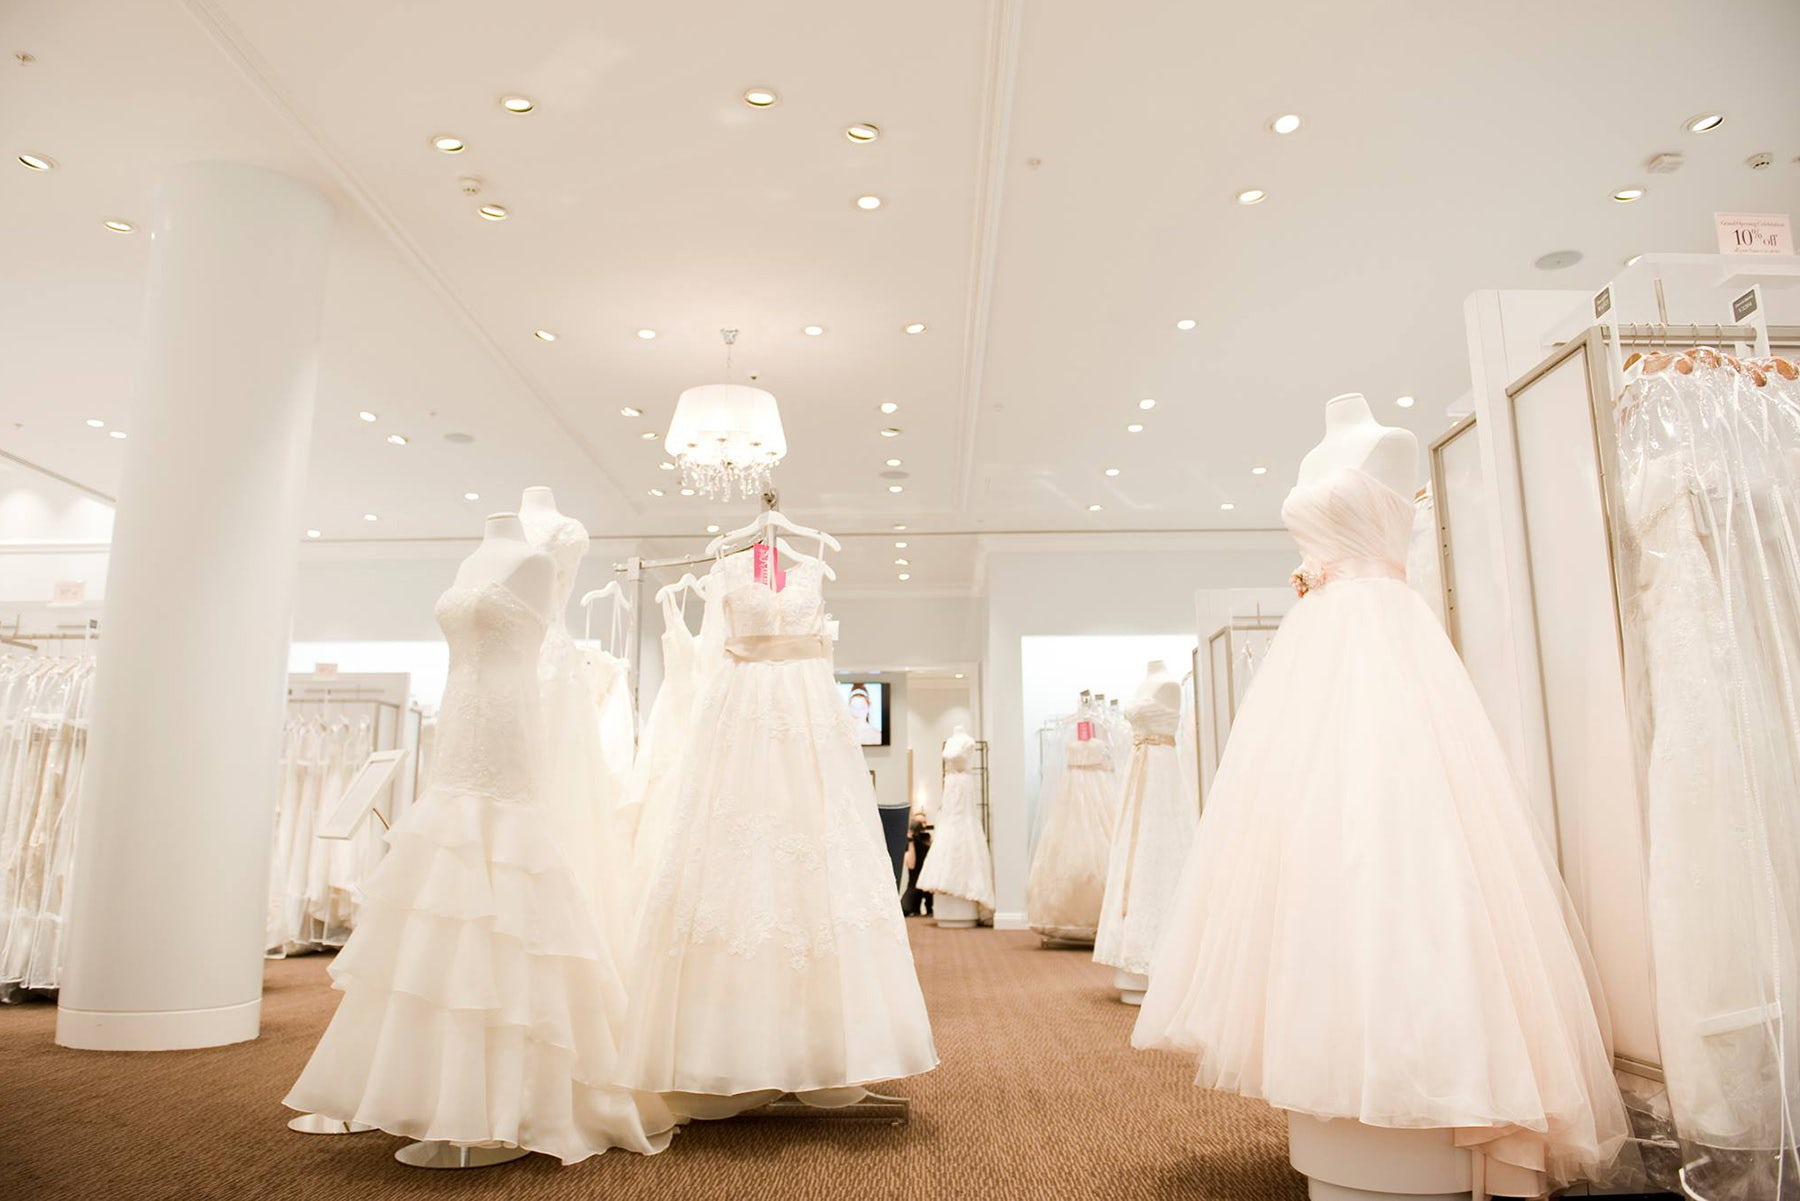 David's Bridal store | Source: David's Bridal